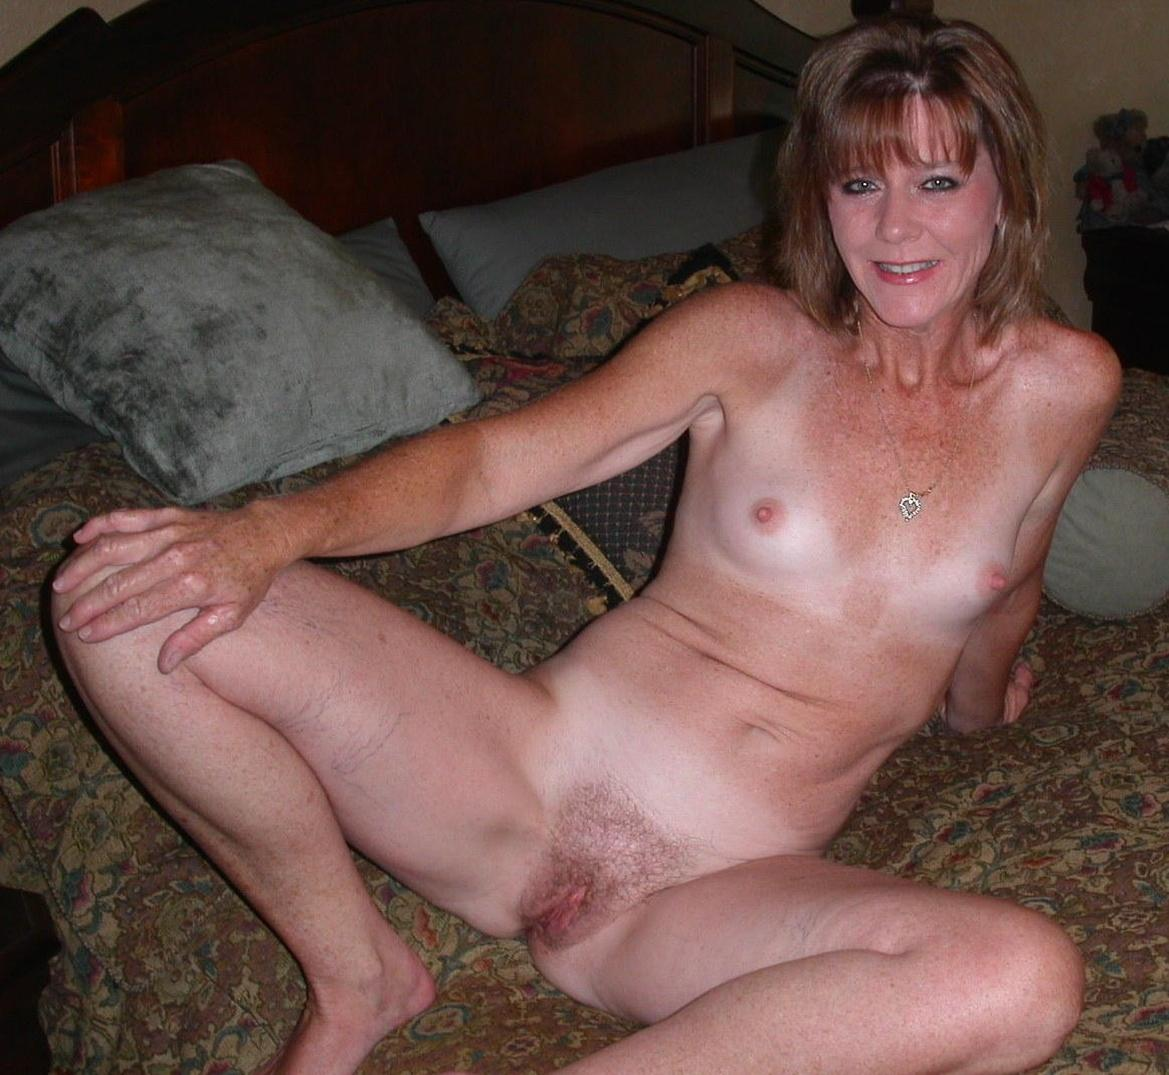 July 21, free mature women video sluts Dissatisfied